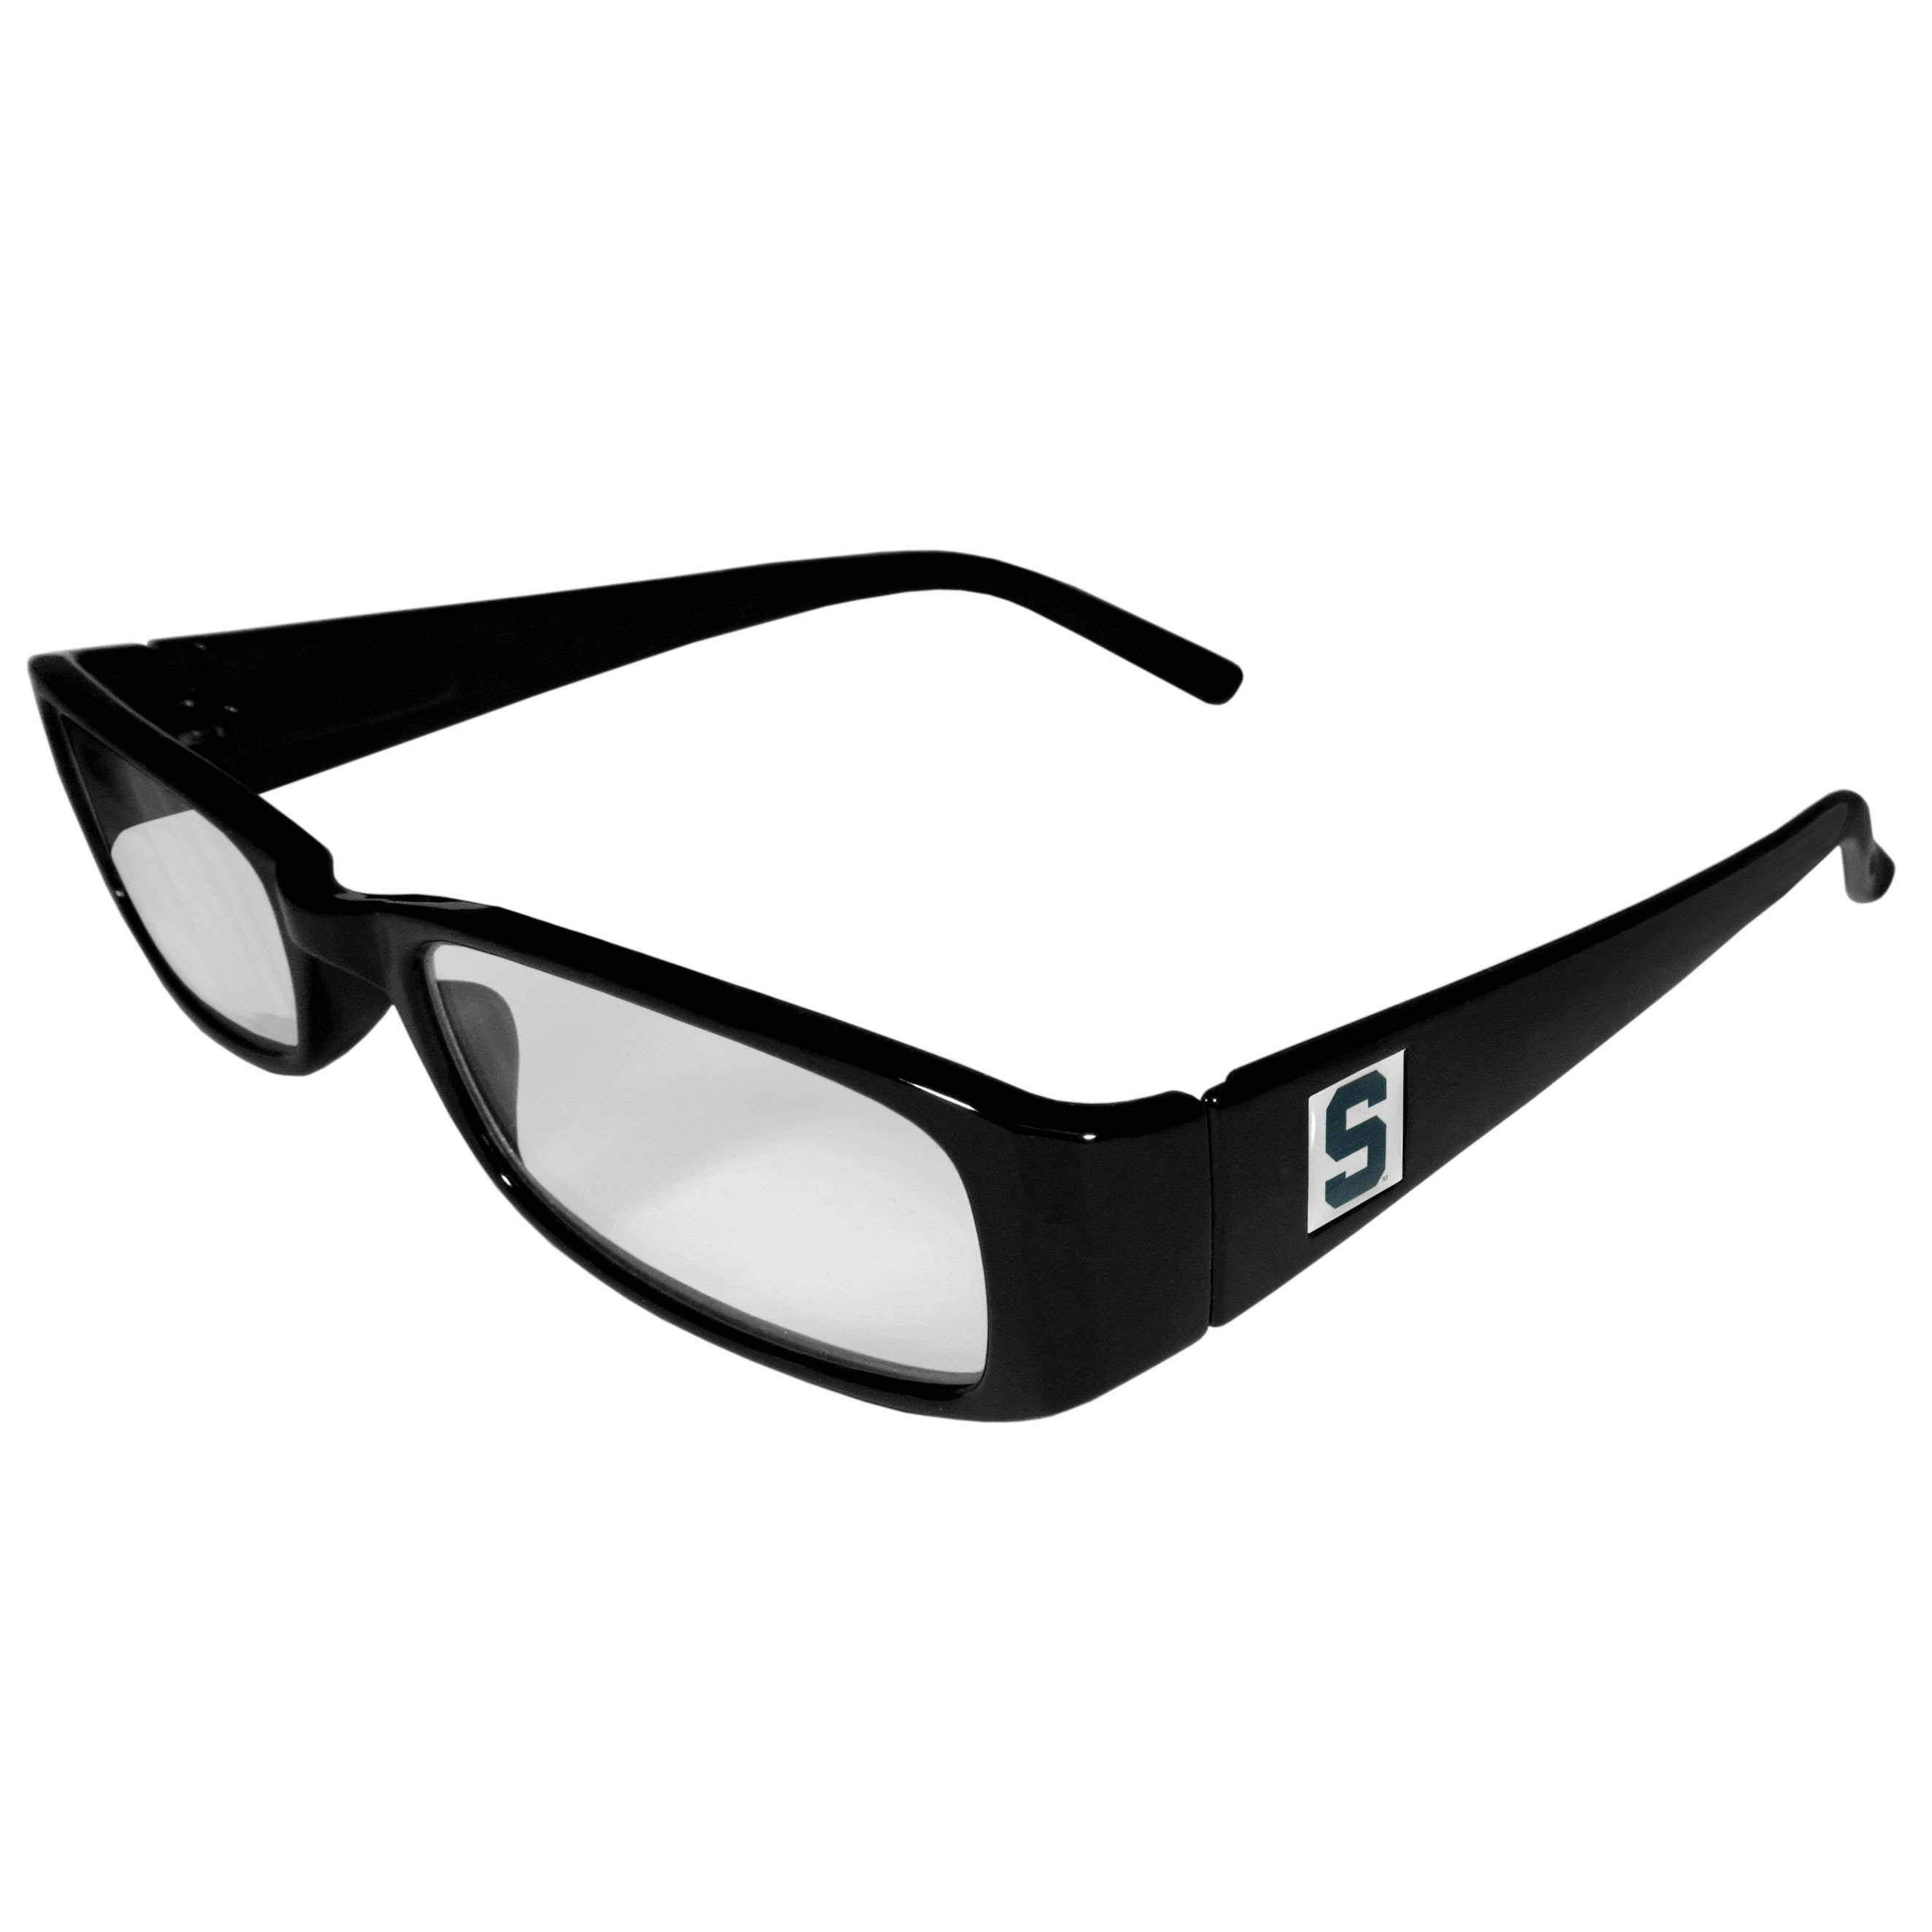 Michigan St. Spartans Black Reading Glasses +2.50 - Our Michigan St. Spartans reading glasses are 5.25 inches wide and feature the team logo on each arm. Magnification Power 2.50